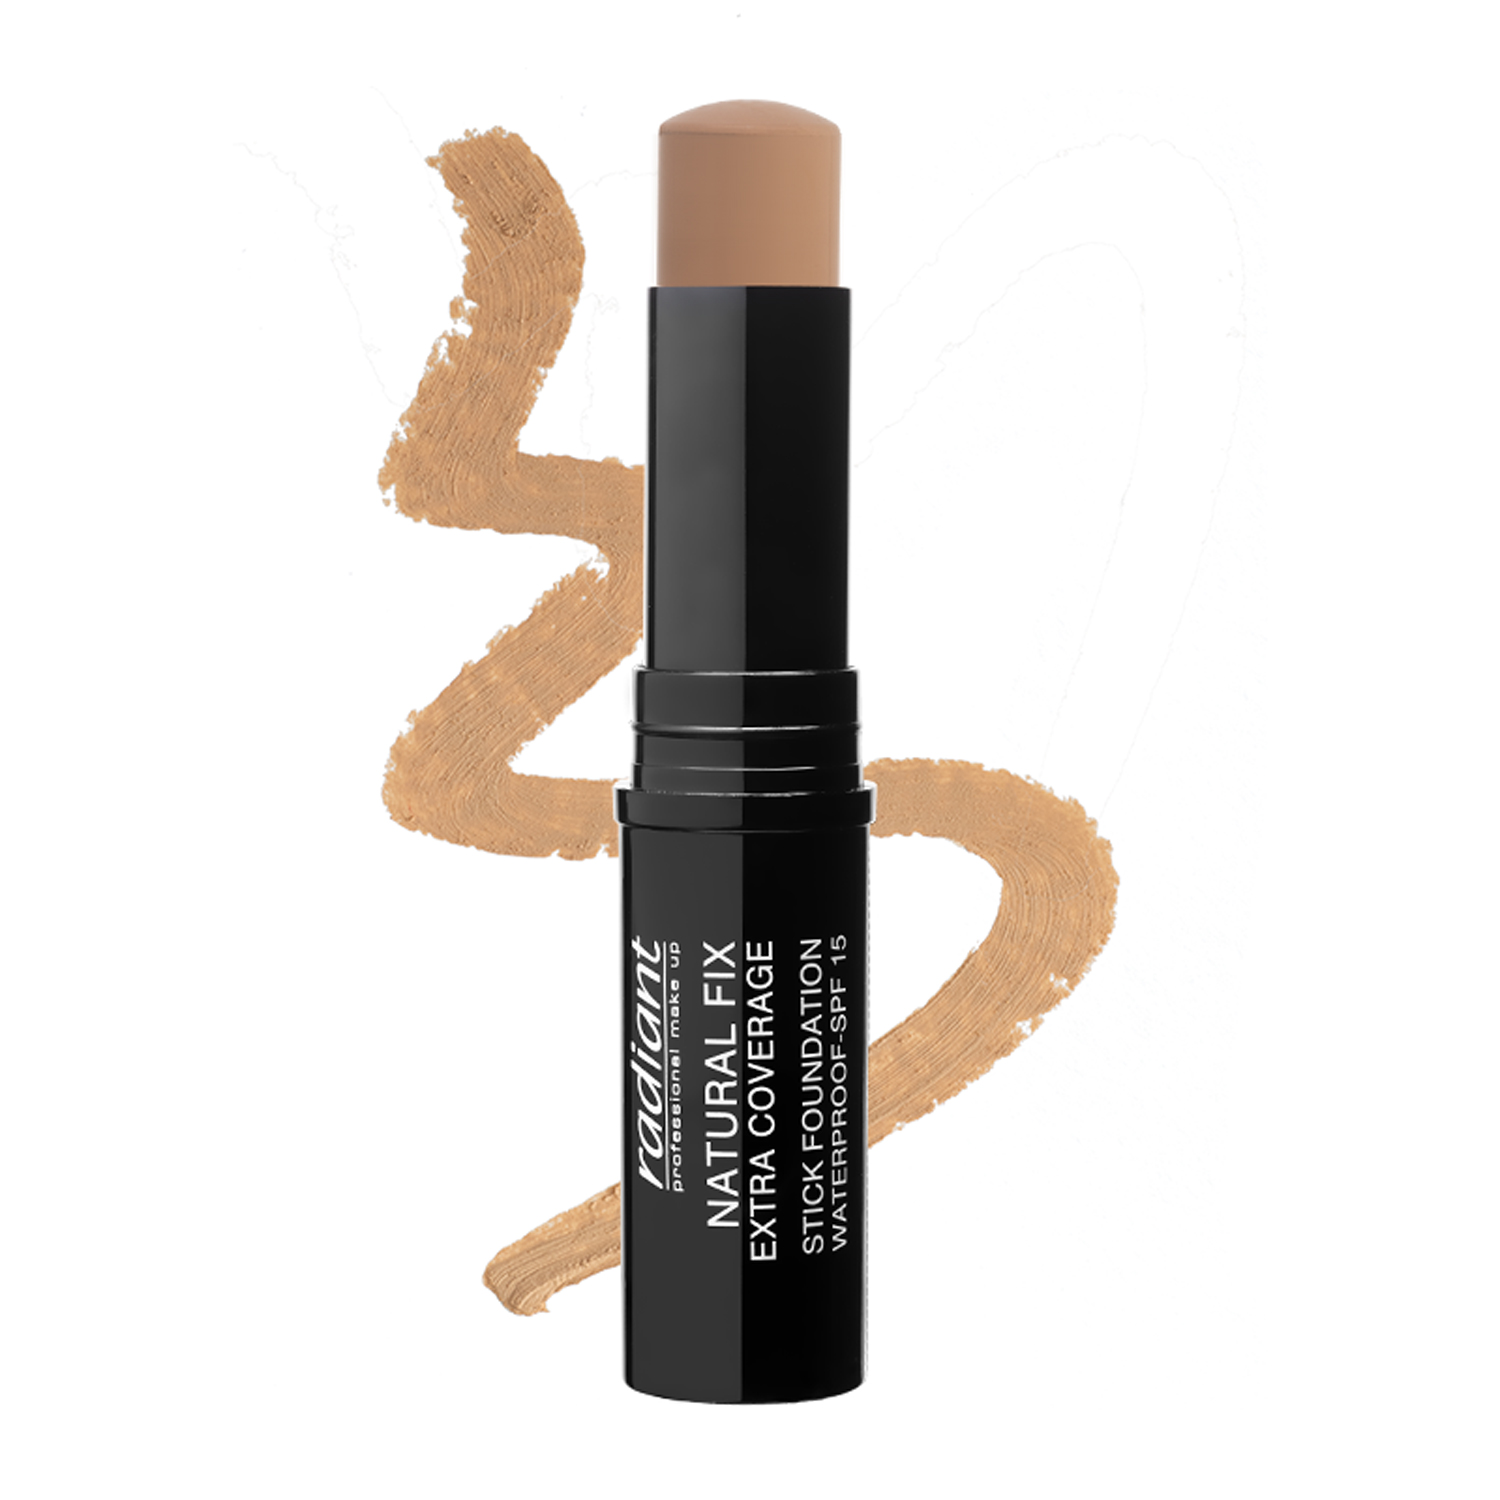 NATURAL FIX EXTRA COVERAGE STICK FOUNDATION  WATERPROOF SPF 15 (03 SANDSTONE)